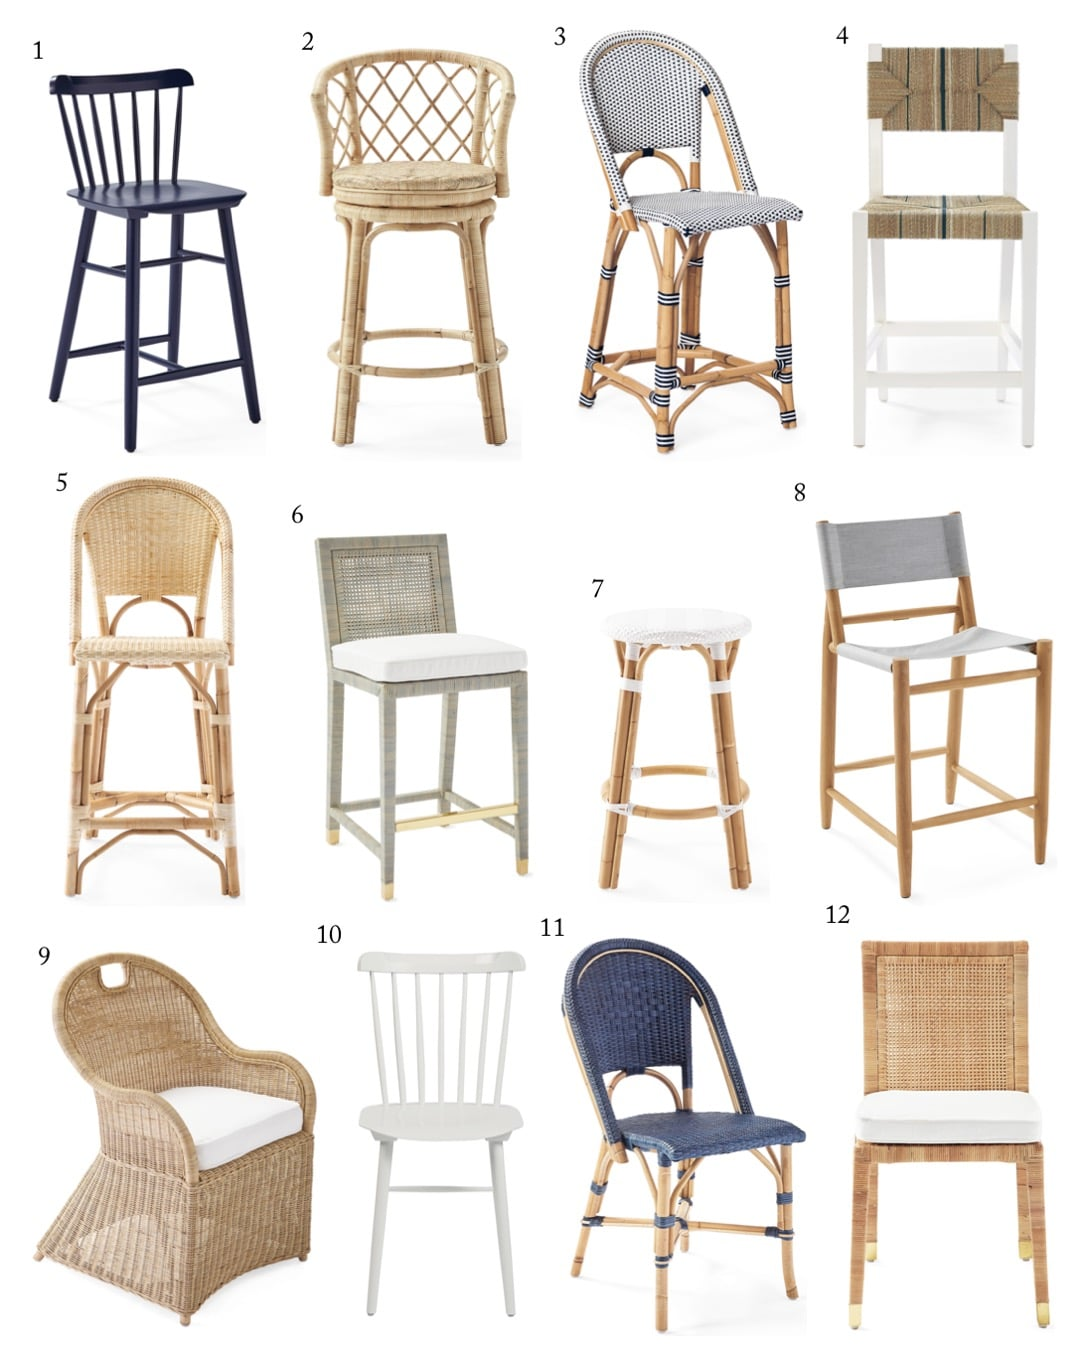 Serena & Lily Bar Stools, Counter Stools & Dining Chairs - Coastal Furniture - Coastal Bar Stools & Counter Stools